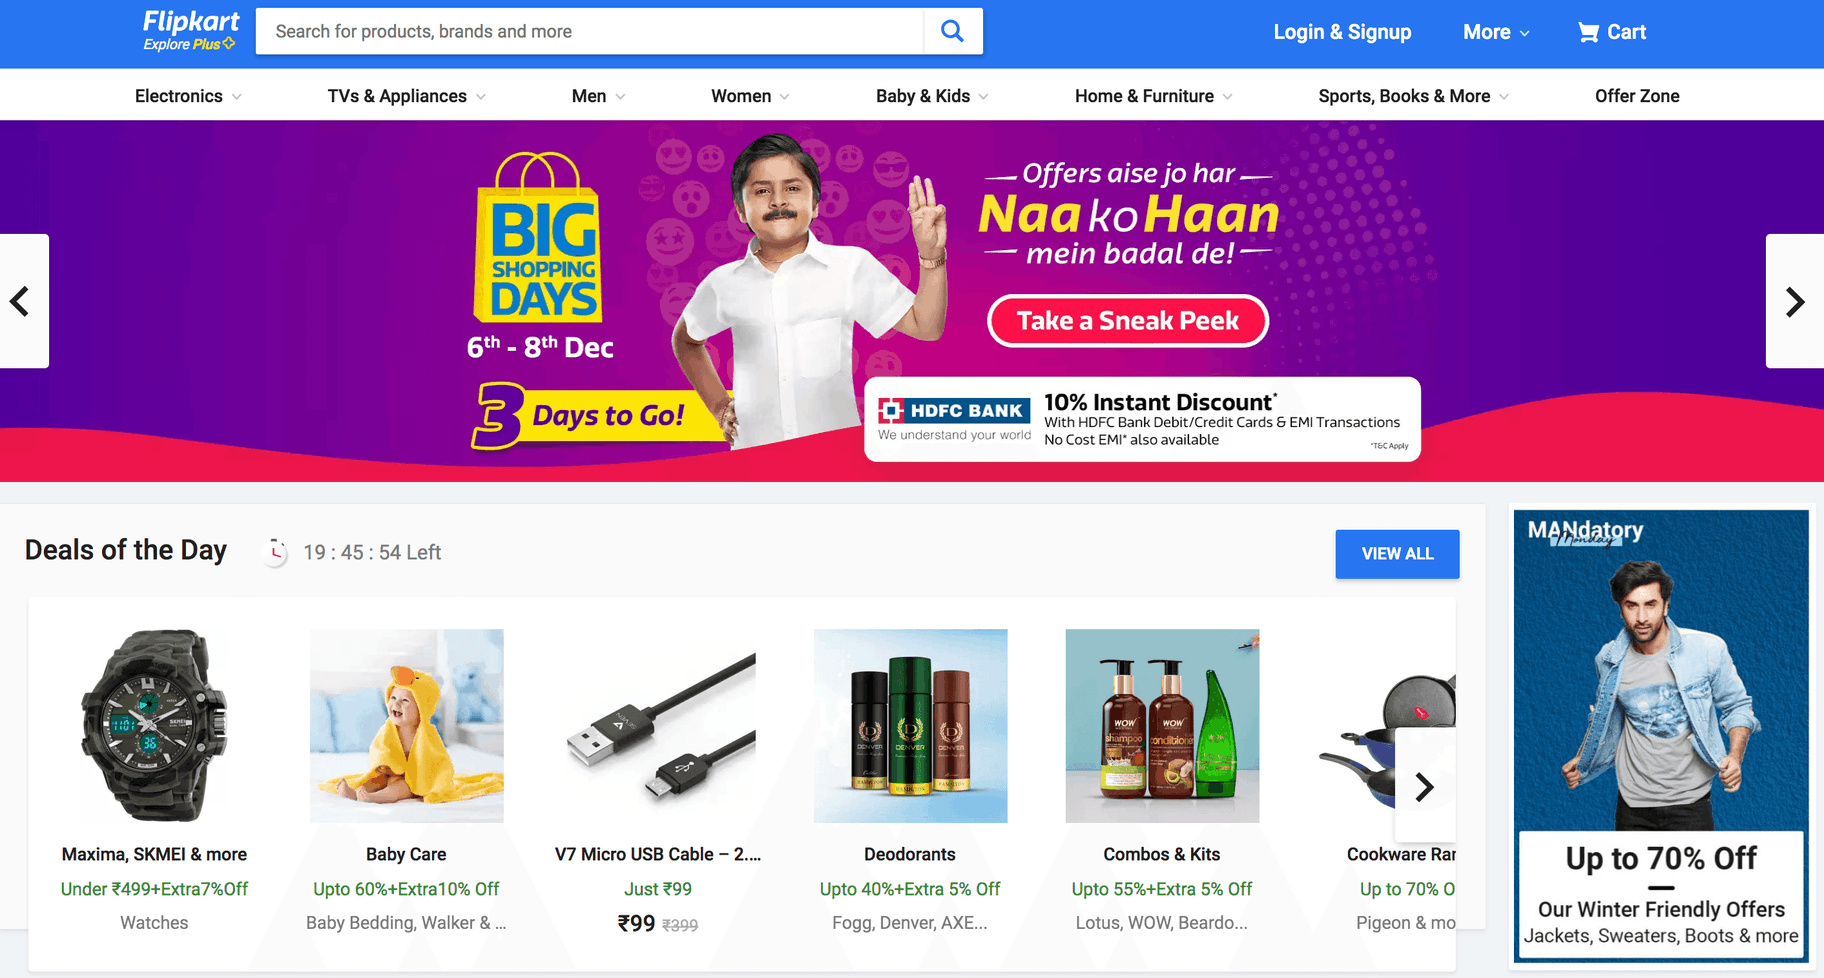 Popular Ecommerce Websites - Flipkart